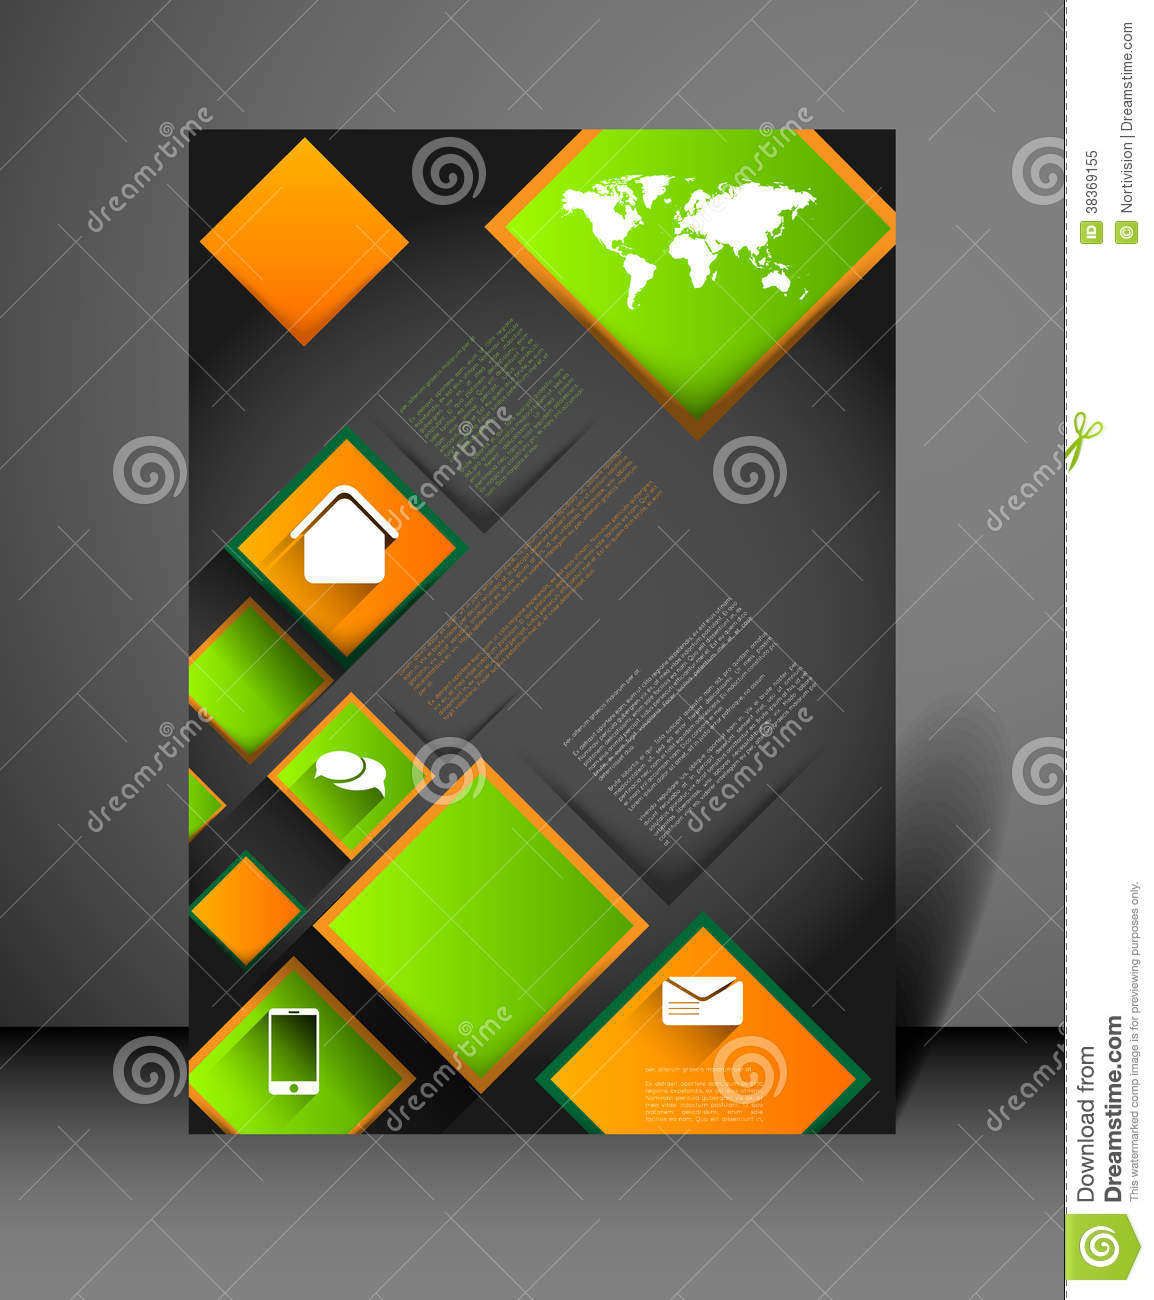 modern poster design template stock vector image 38369155. Black Bedroom Furniture Sets. Home Design Ideas